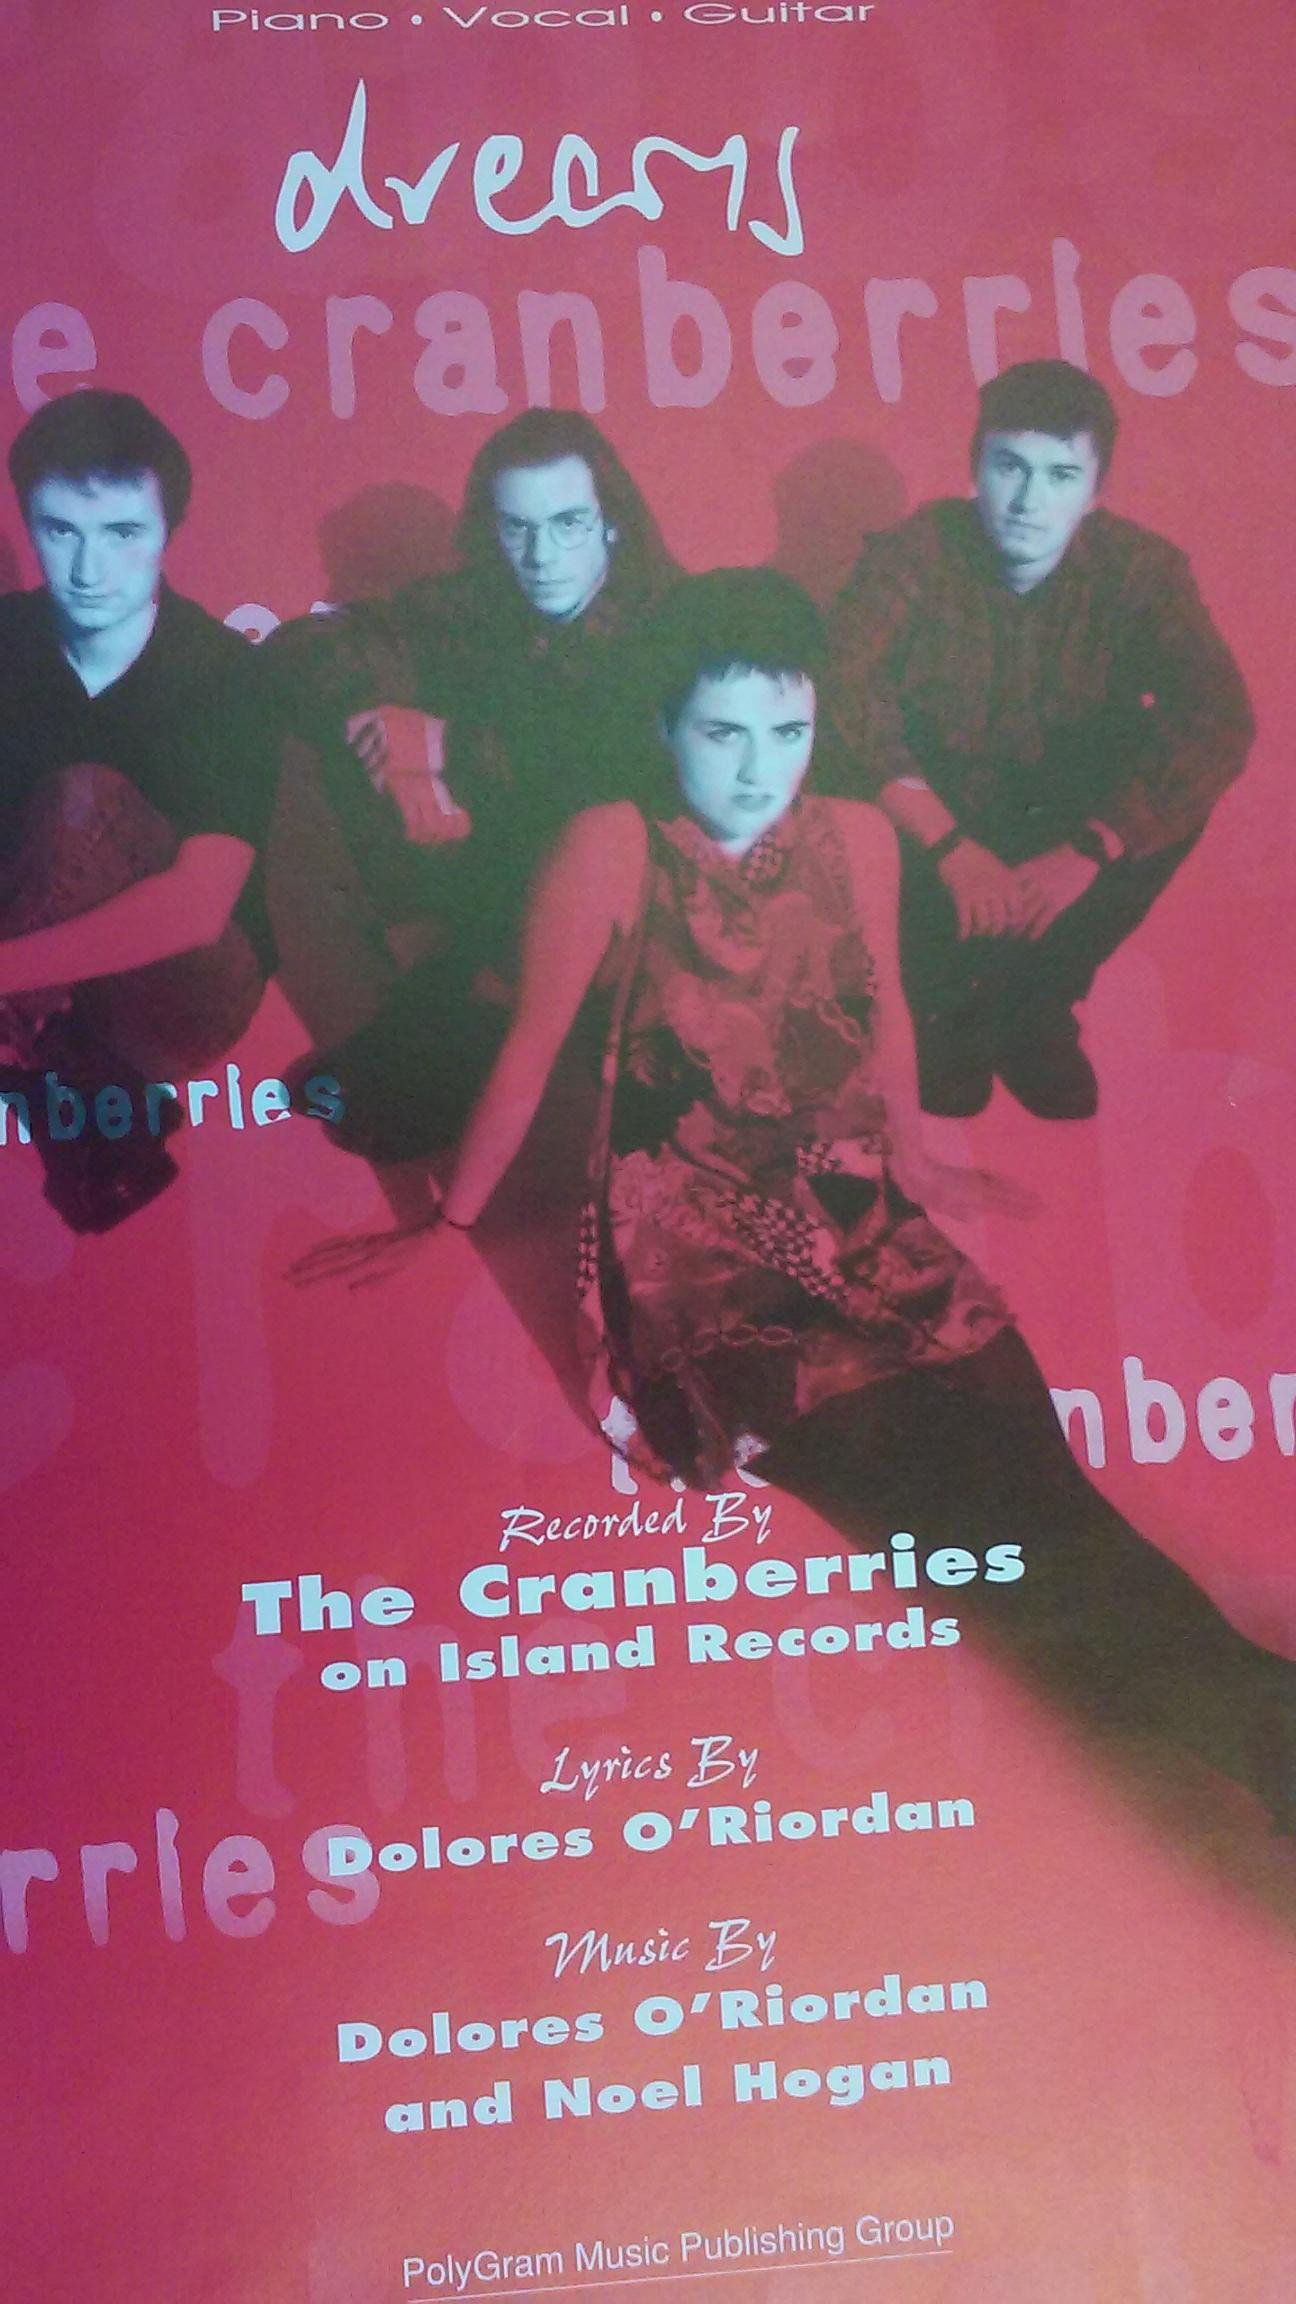 2eef44c061d2c Dreams (The Cranberries) - P V G Sheet Music - W Photo Cover Sheet music –  1992